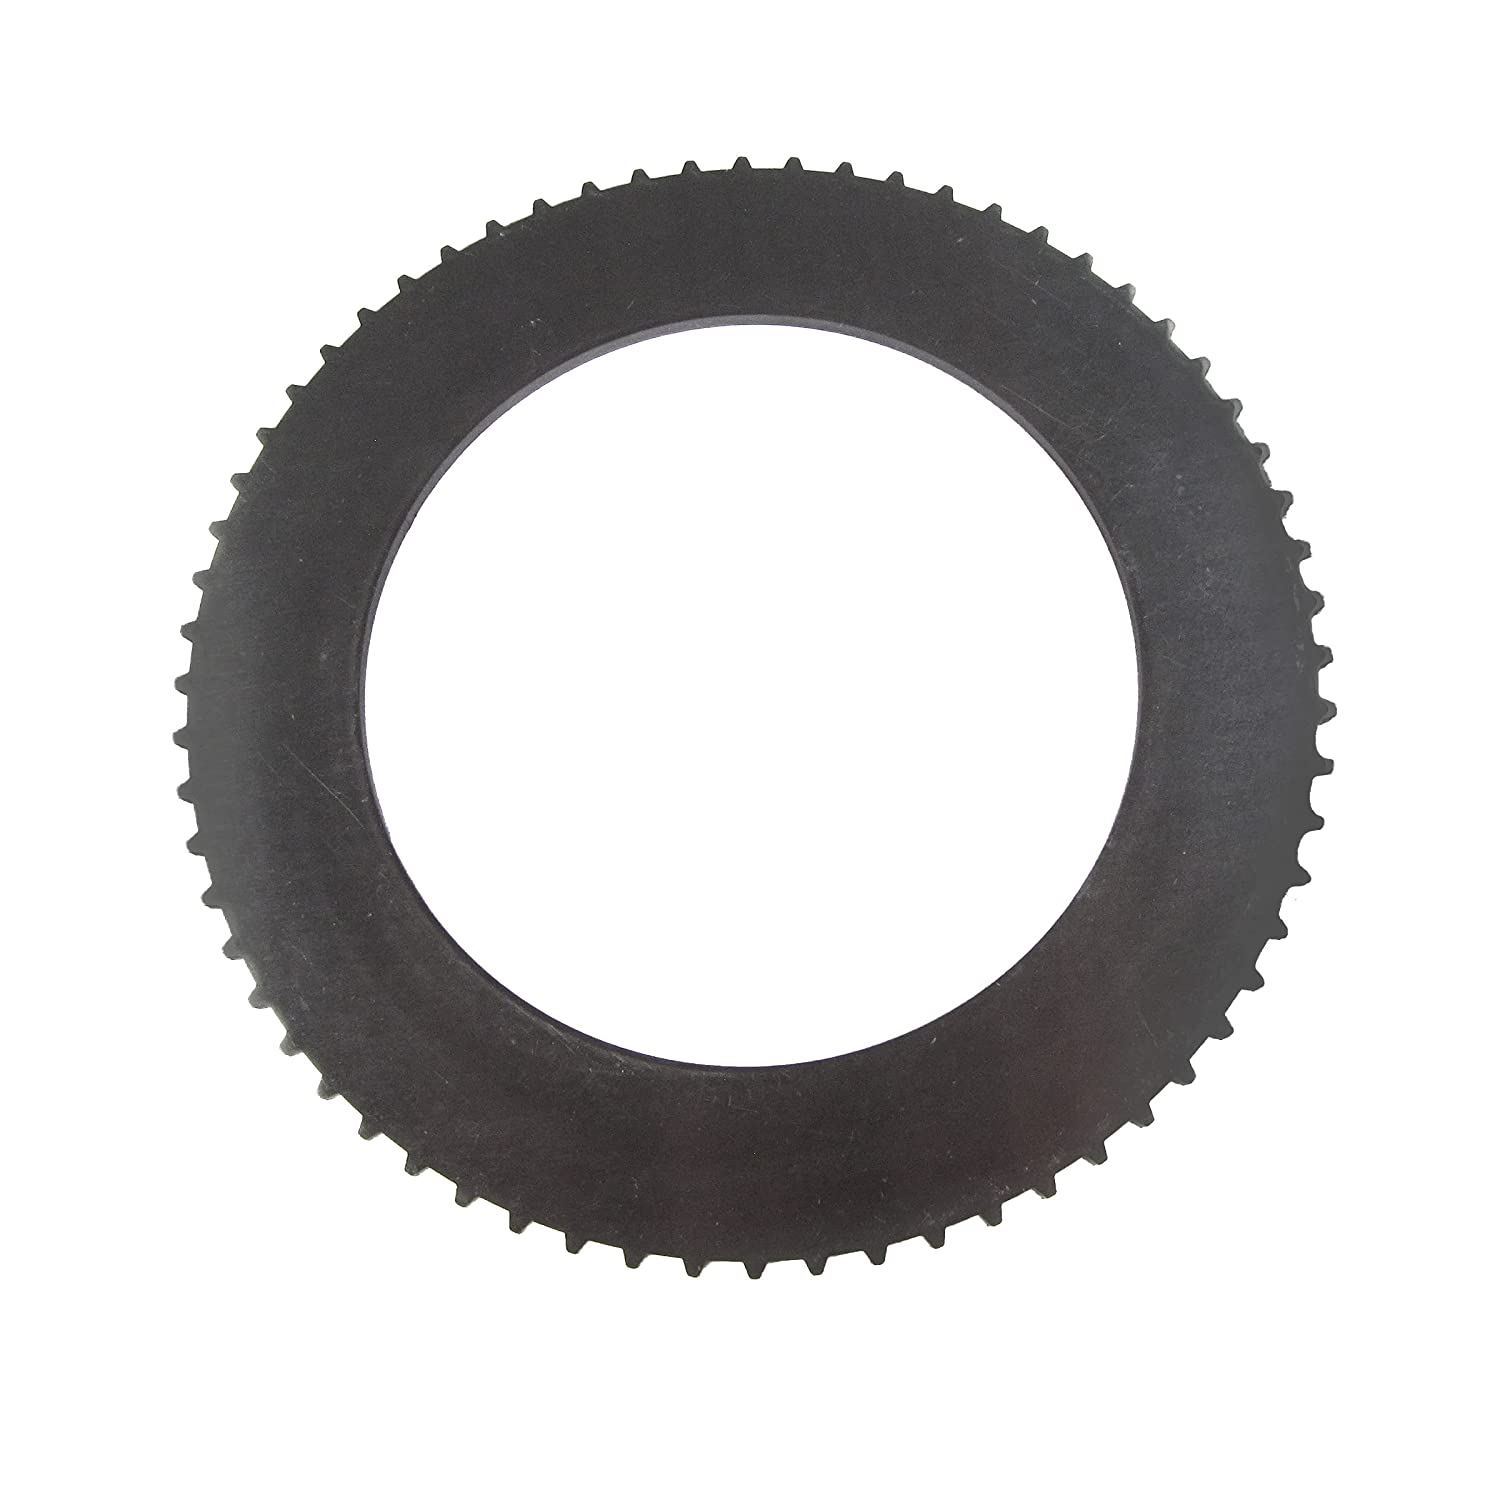 National products Steel Clutch CARRARO 136155 Replaced 303701-500 # by Regular store Alto